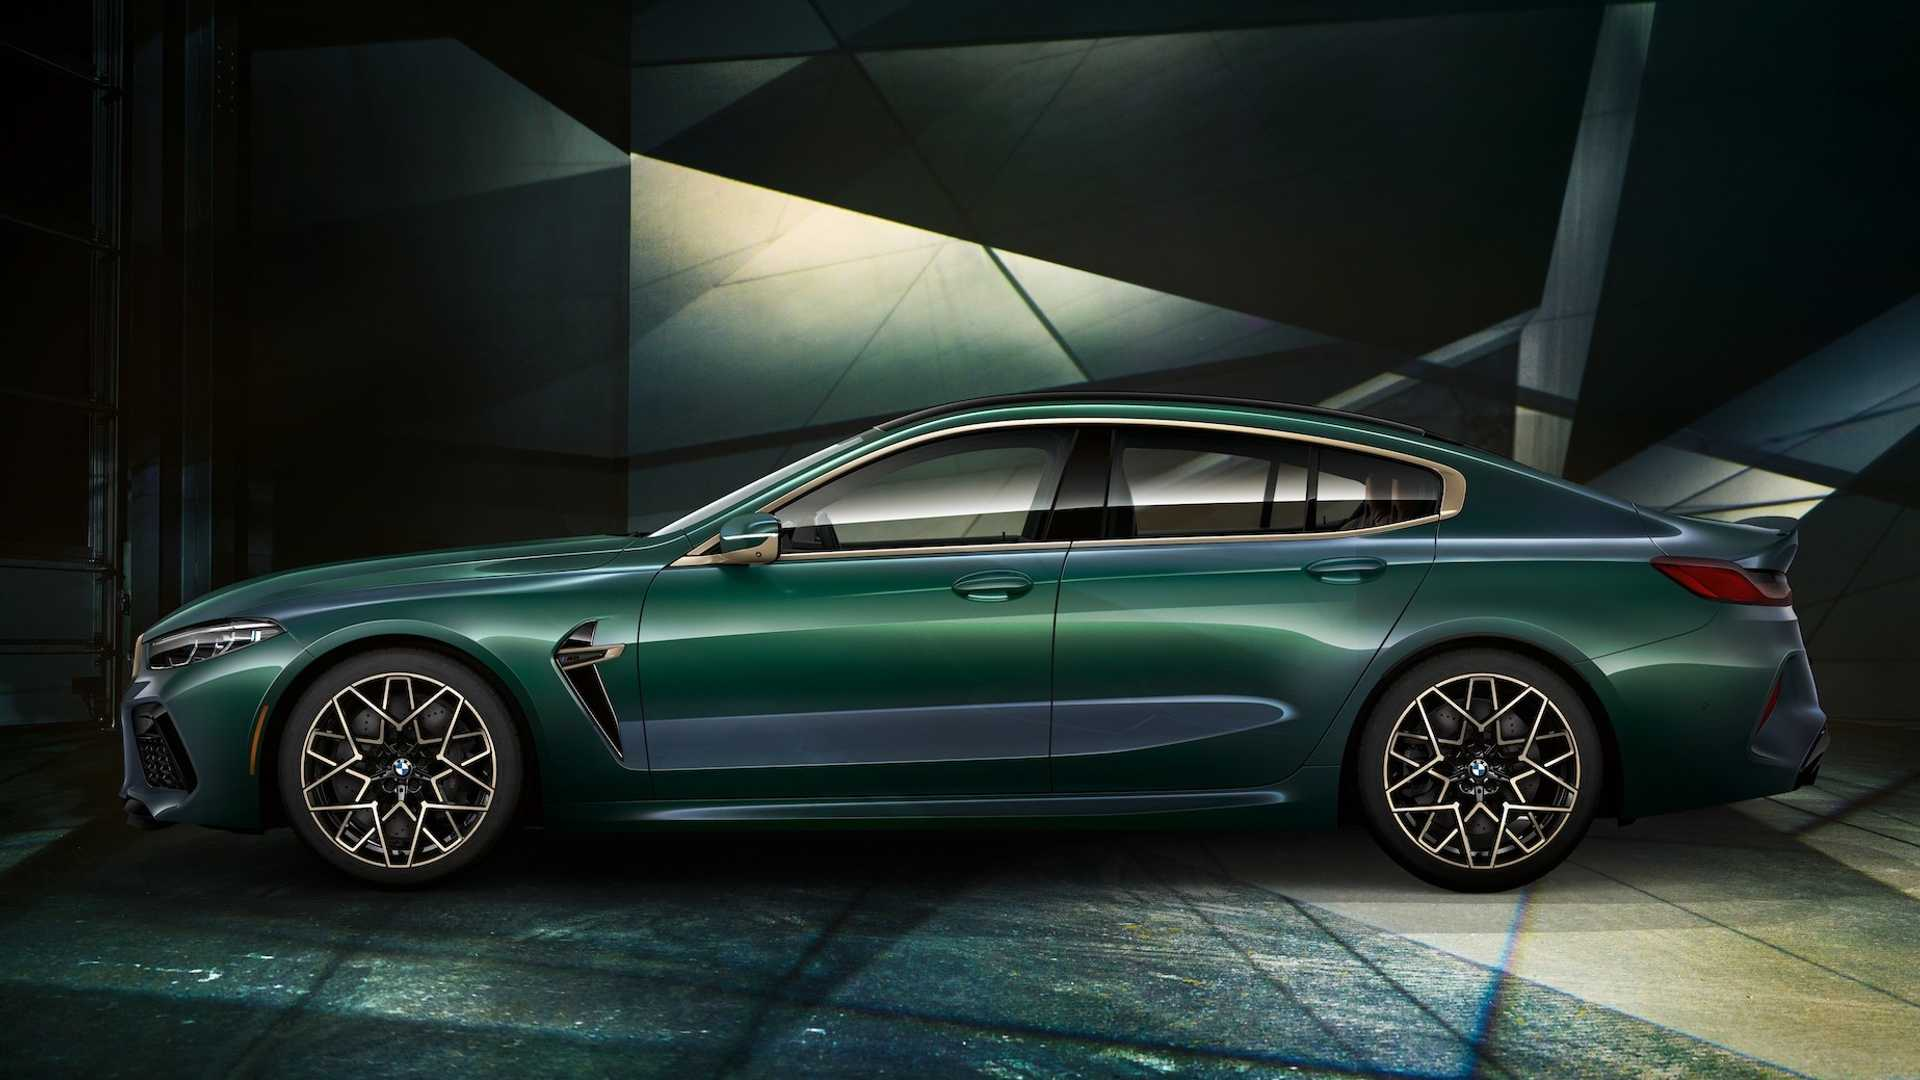 2020-bmw-m8-gran-coupe-competition-23